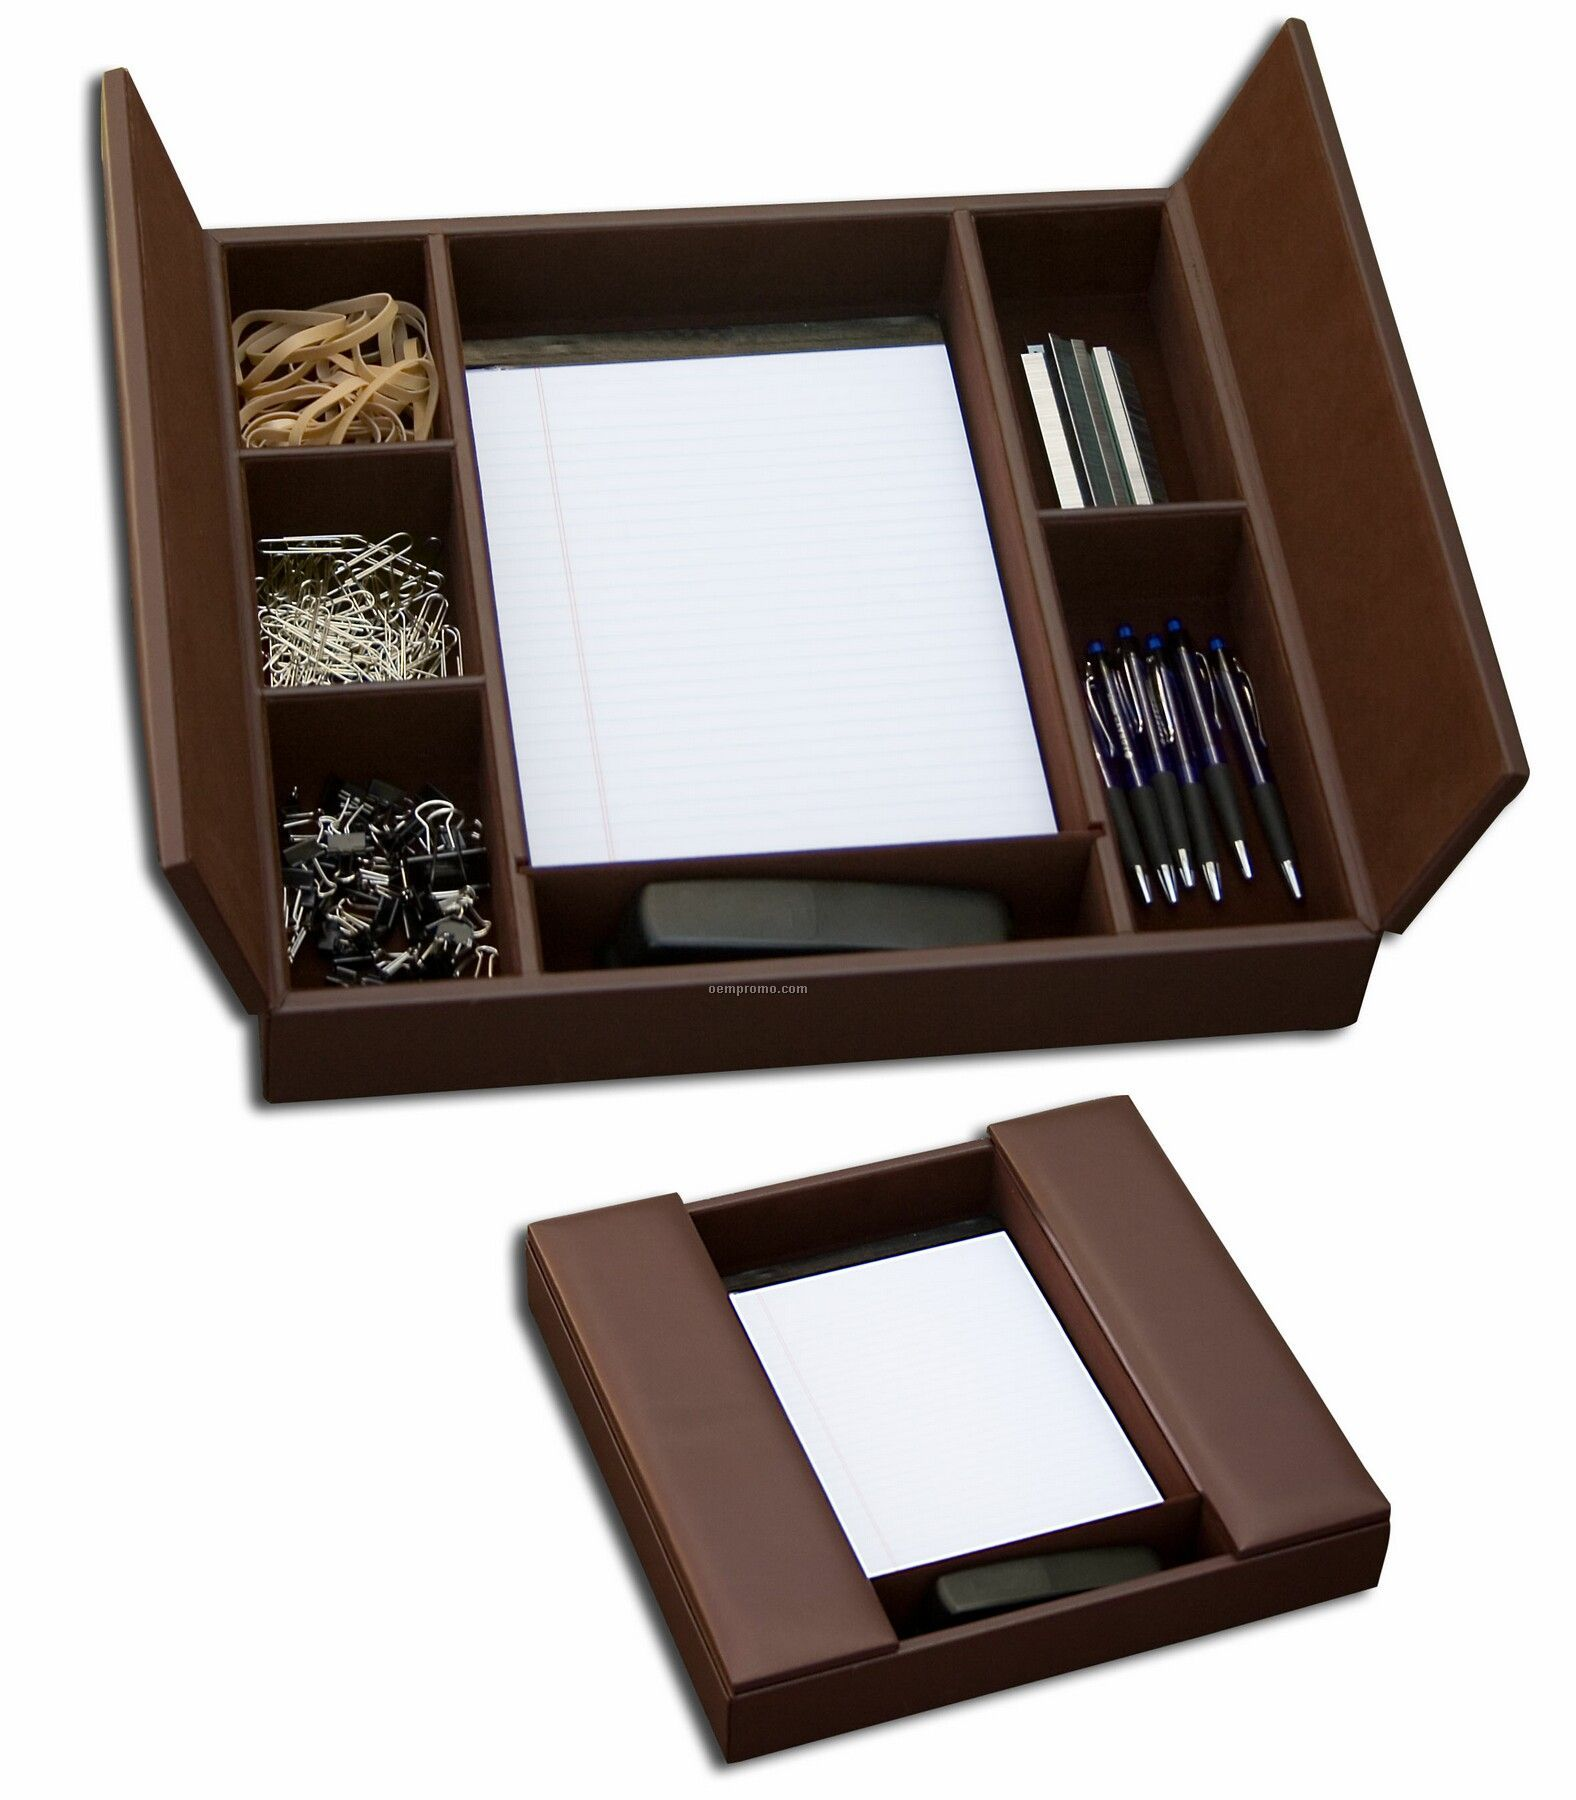 Classic Leather Enhanced Conference Room Organizer Chocolate Brown